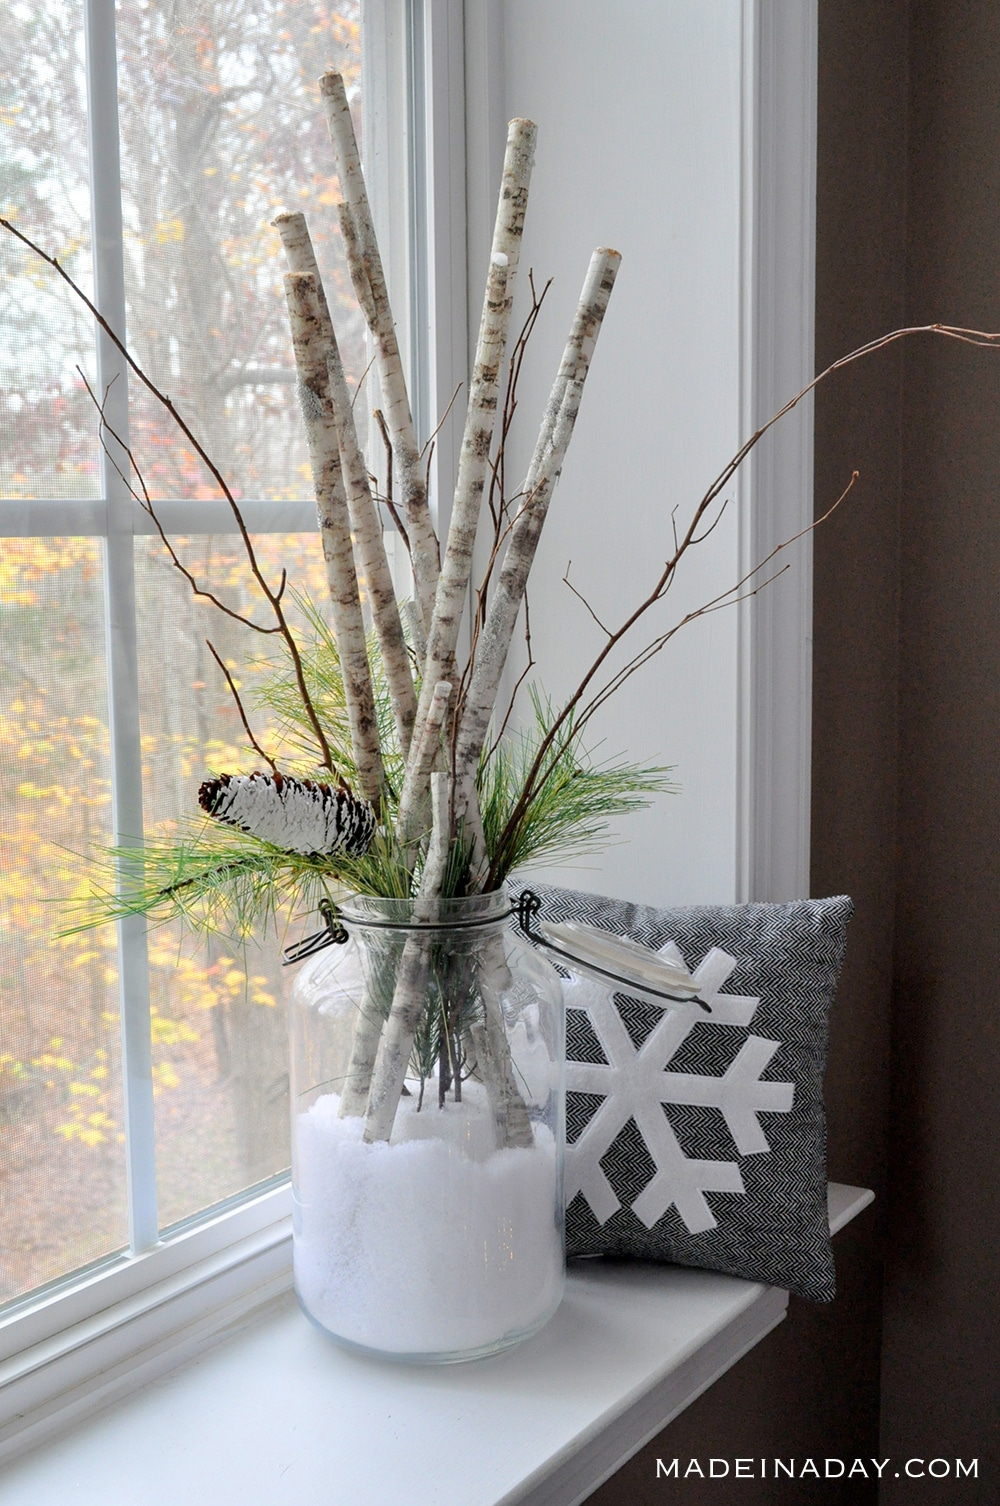 Sweet Snow Day in a Jar Birch Branch Arrangement